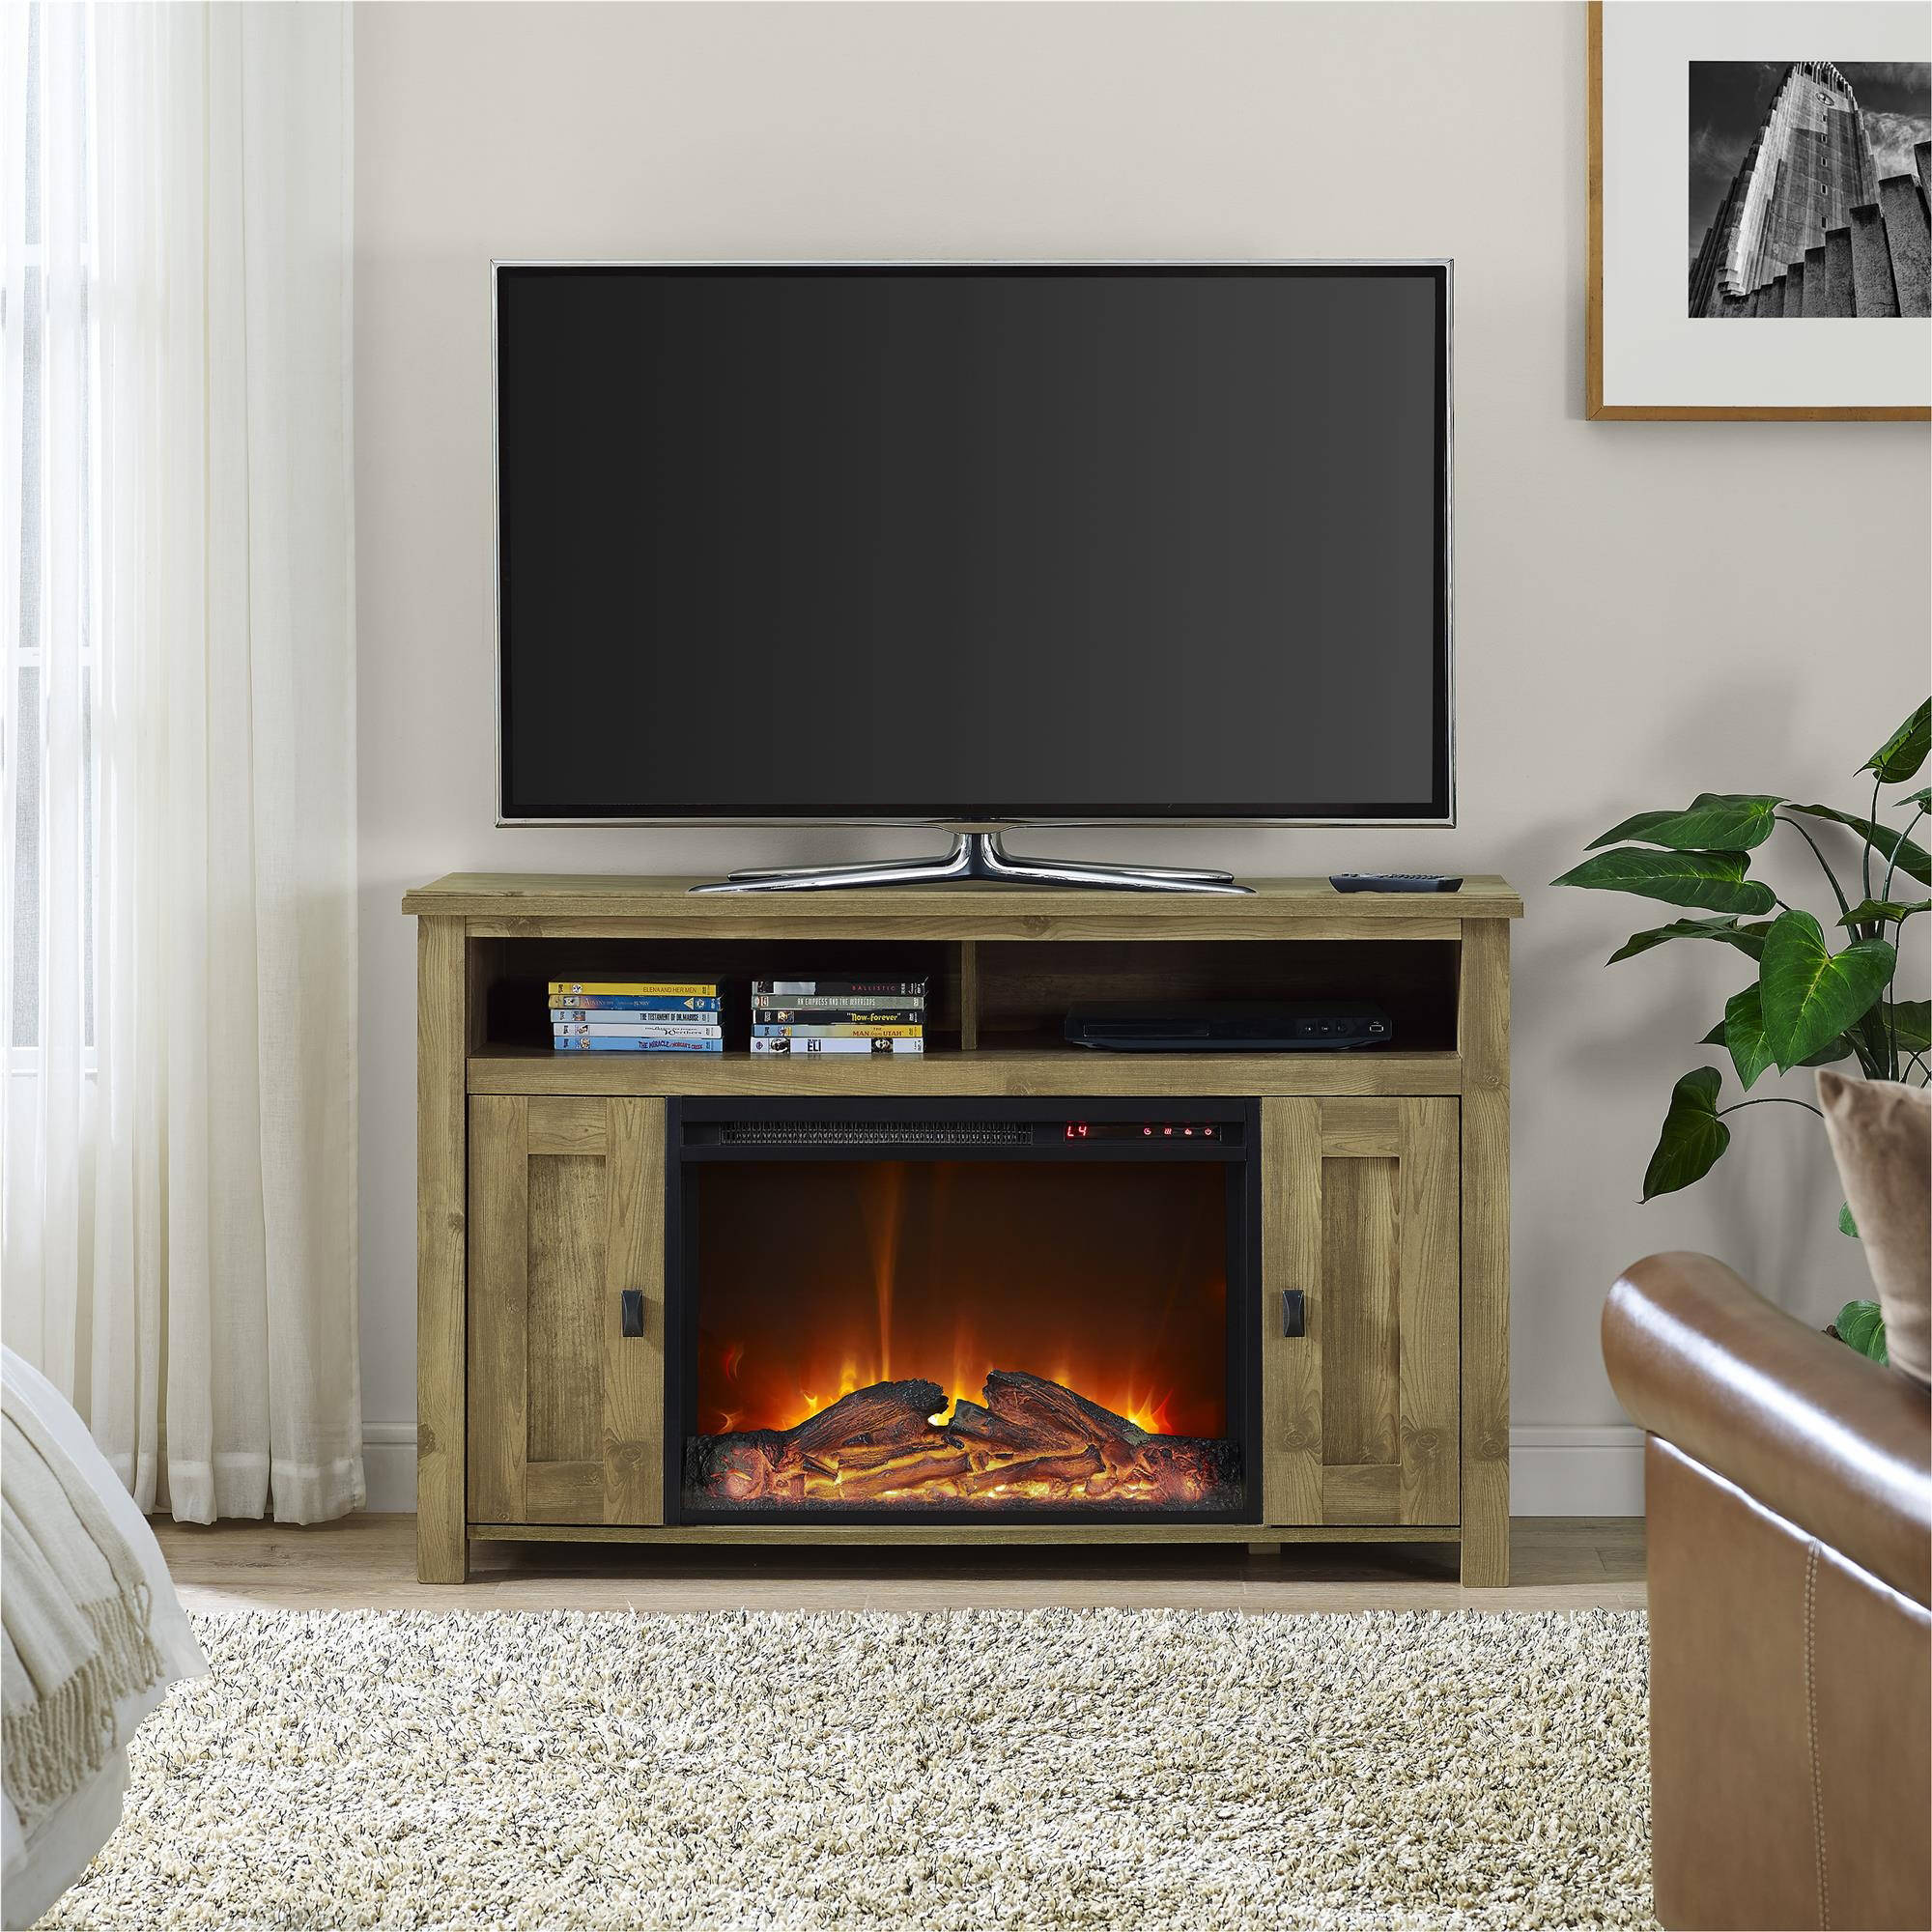 50 Inch Tv Stand With Fireplace Media Console Electric